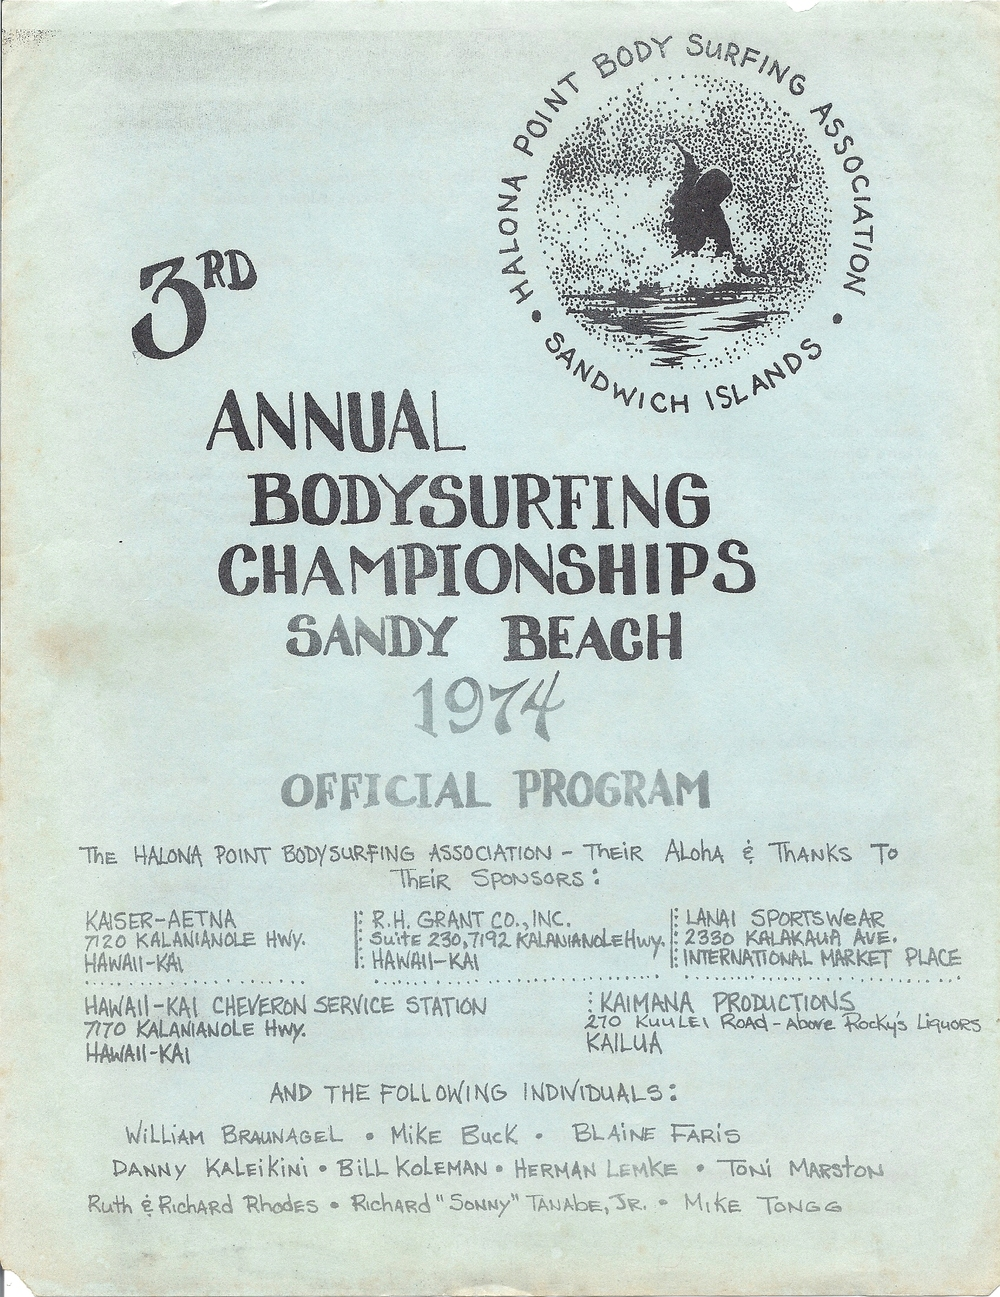 1974 Sandy Beach Bodysurfing Championships Program